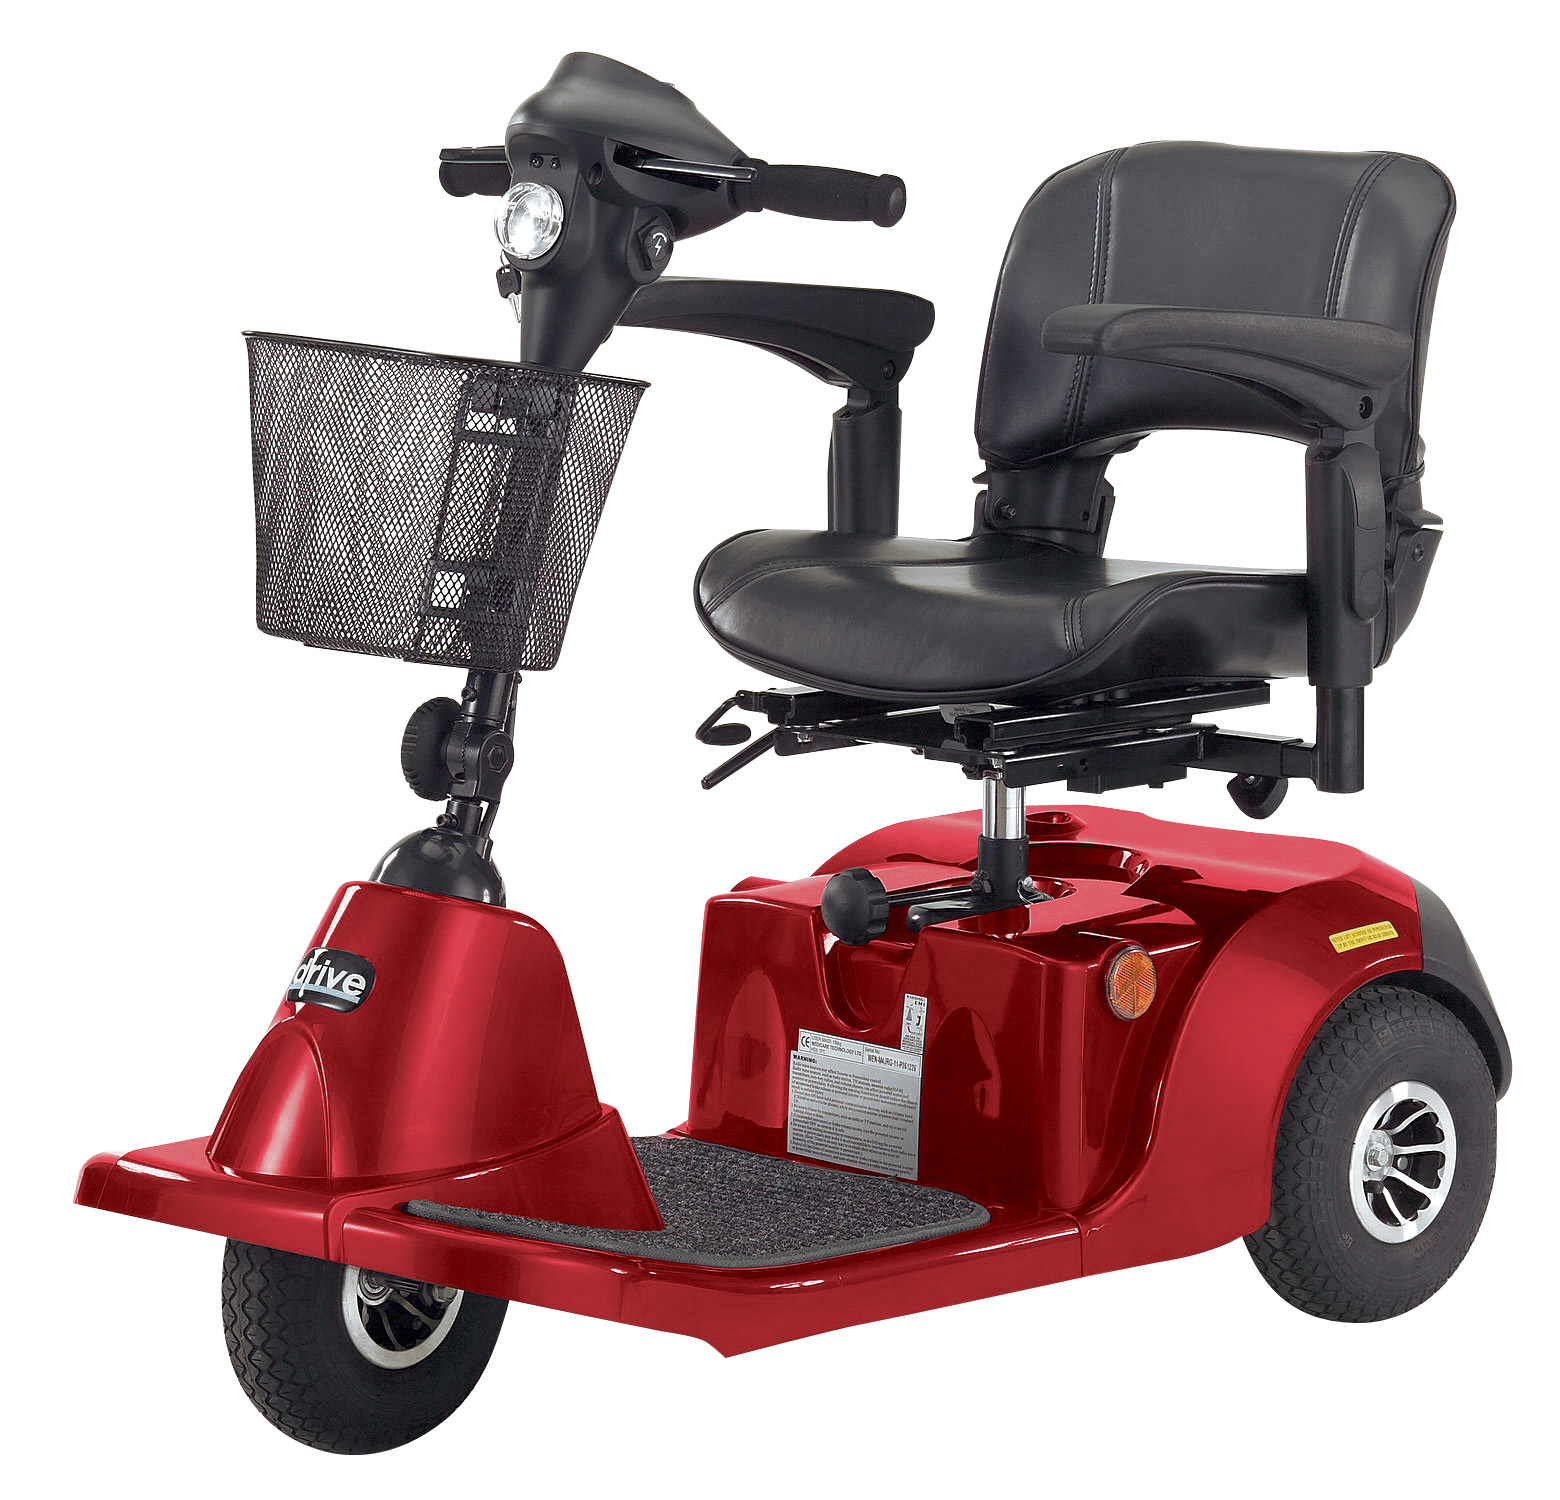 Drive Daytona 3 GT Medium Sized 3 Wheel Scooter with Padded Seat